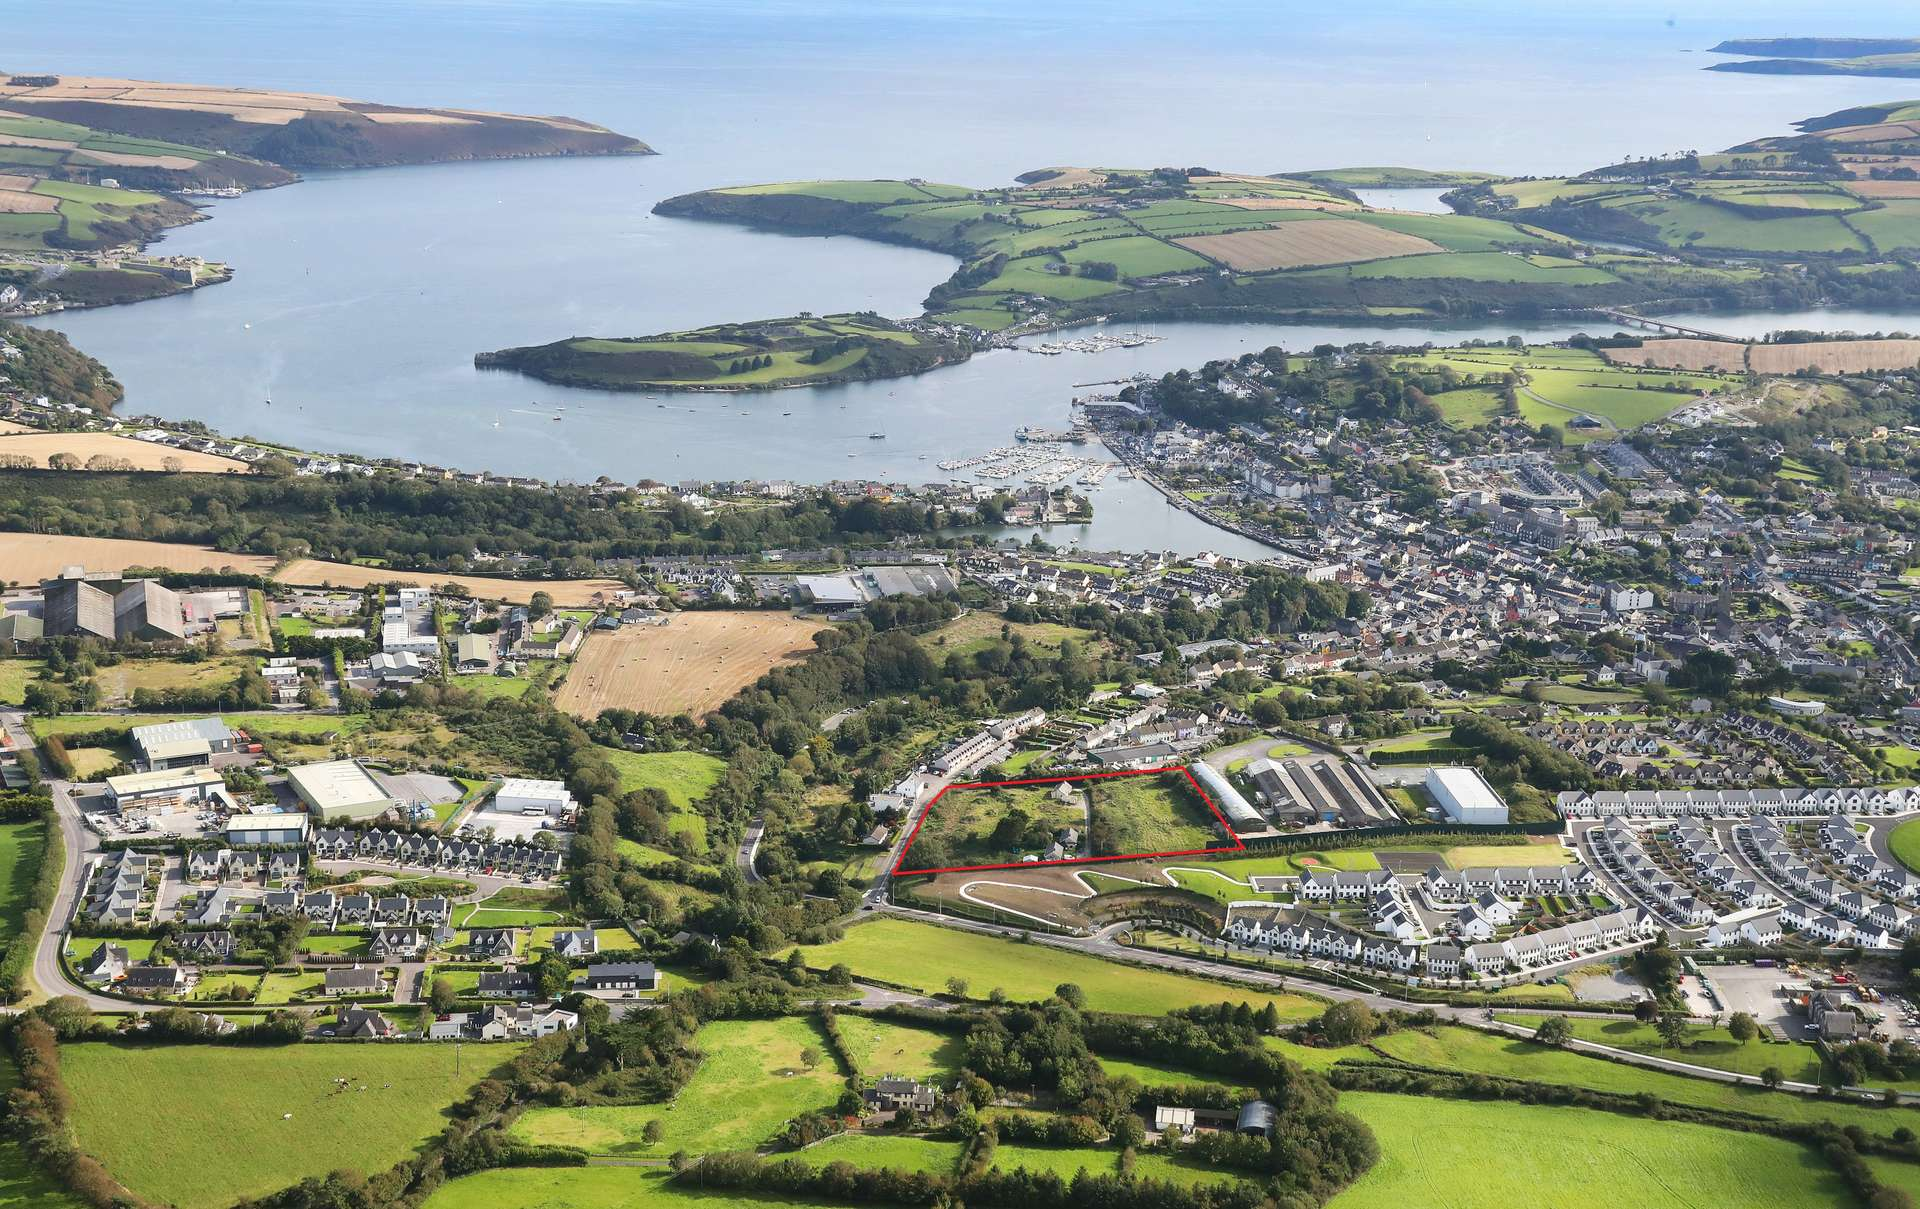 Full Planning Permission secured for high-end residential scheme in Kinsale.